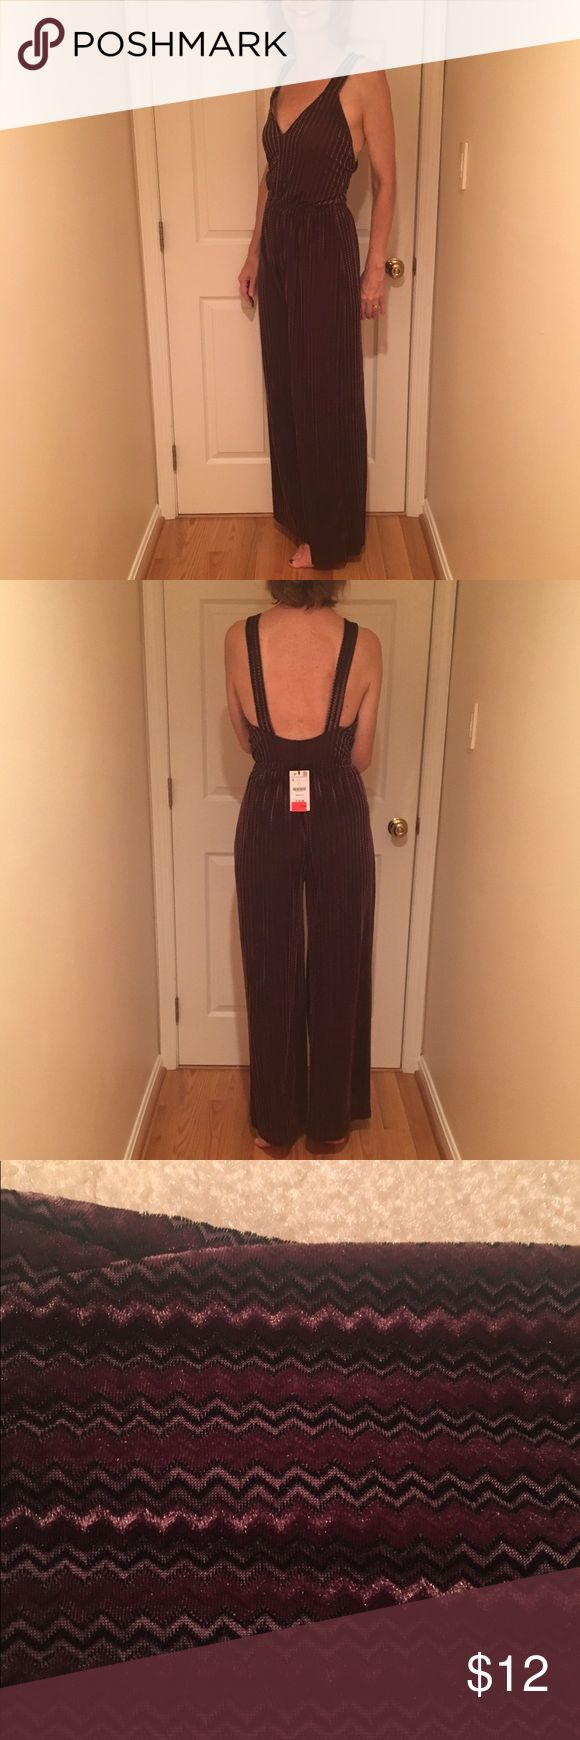 """FLASH SALE Zara Brown Jumpsuit Super soft brown Jumpsuit from Zara """"trafaluc"""" NWT velvet seventies vibe! Sold out in stores and online Zara Pants Jumpsuits & Rompers"""